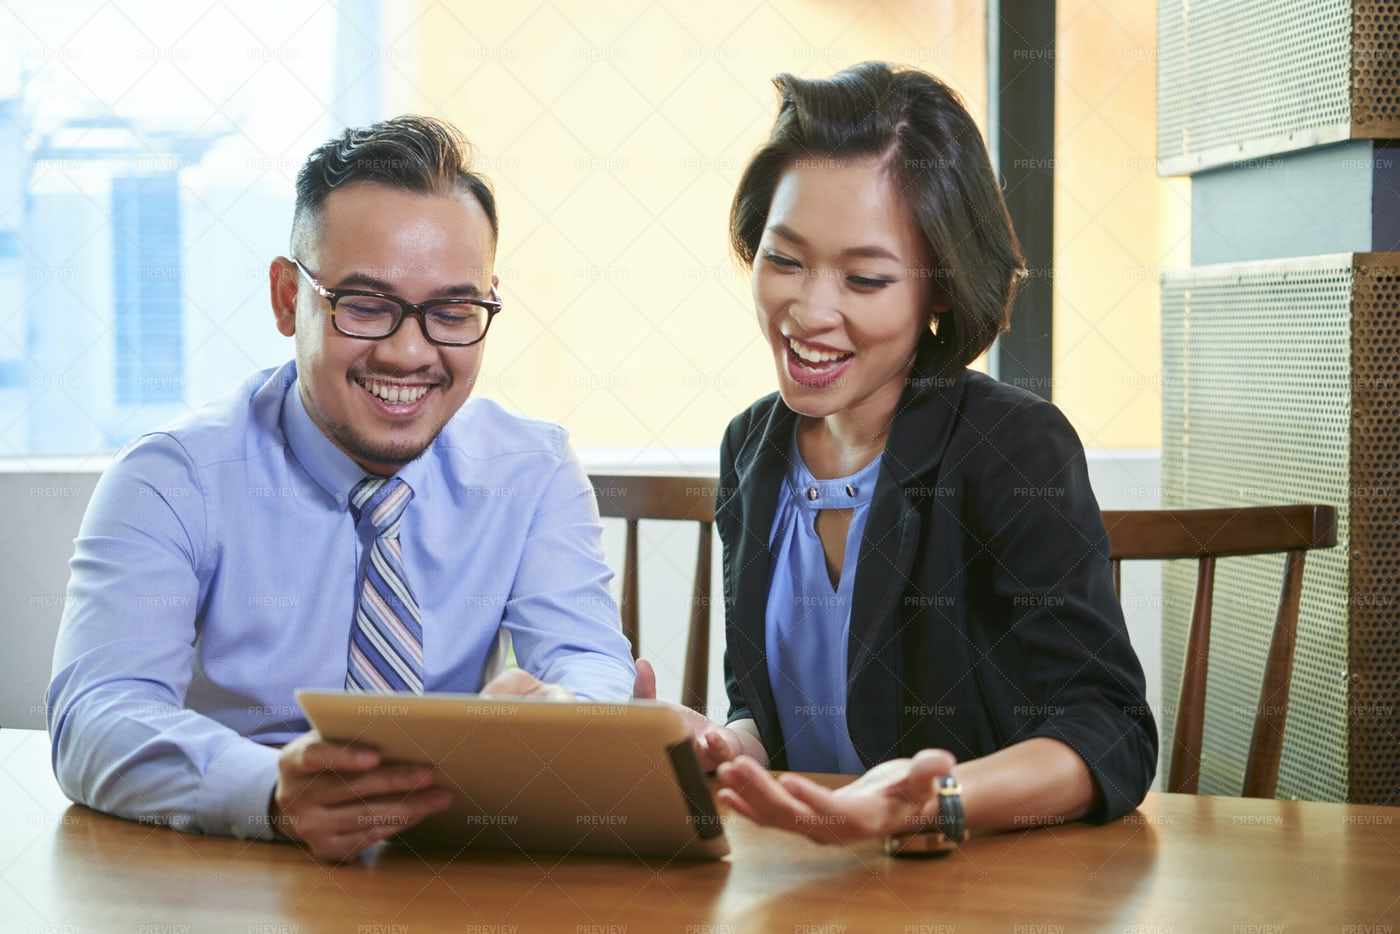 Business People Watching Presentation: Stock Photos